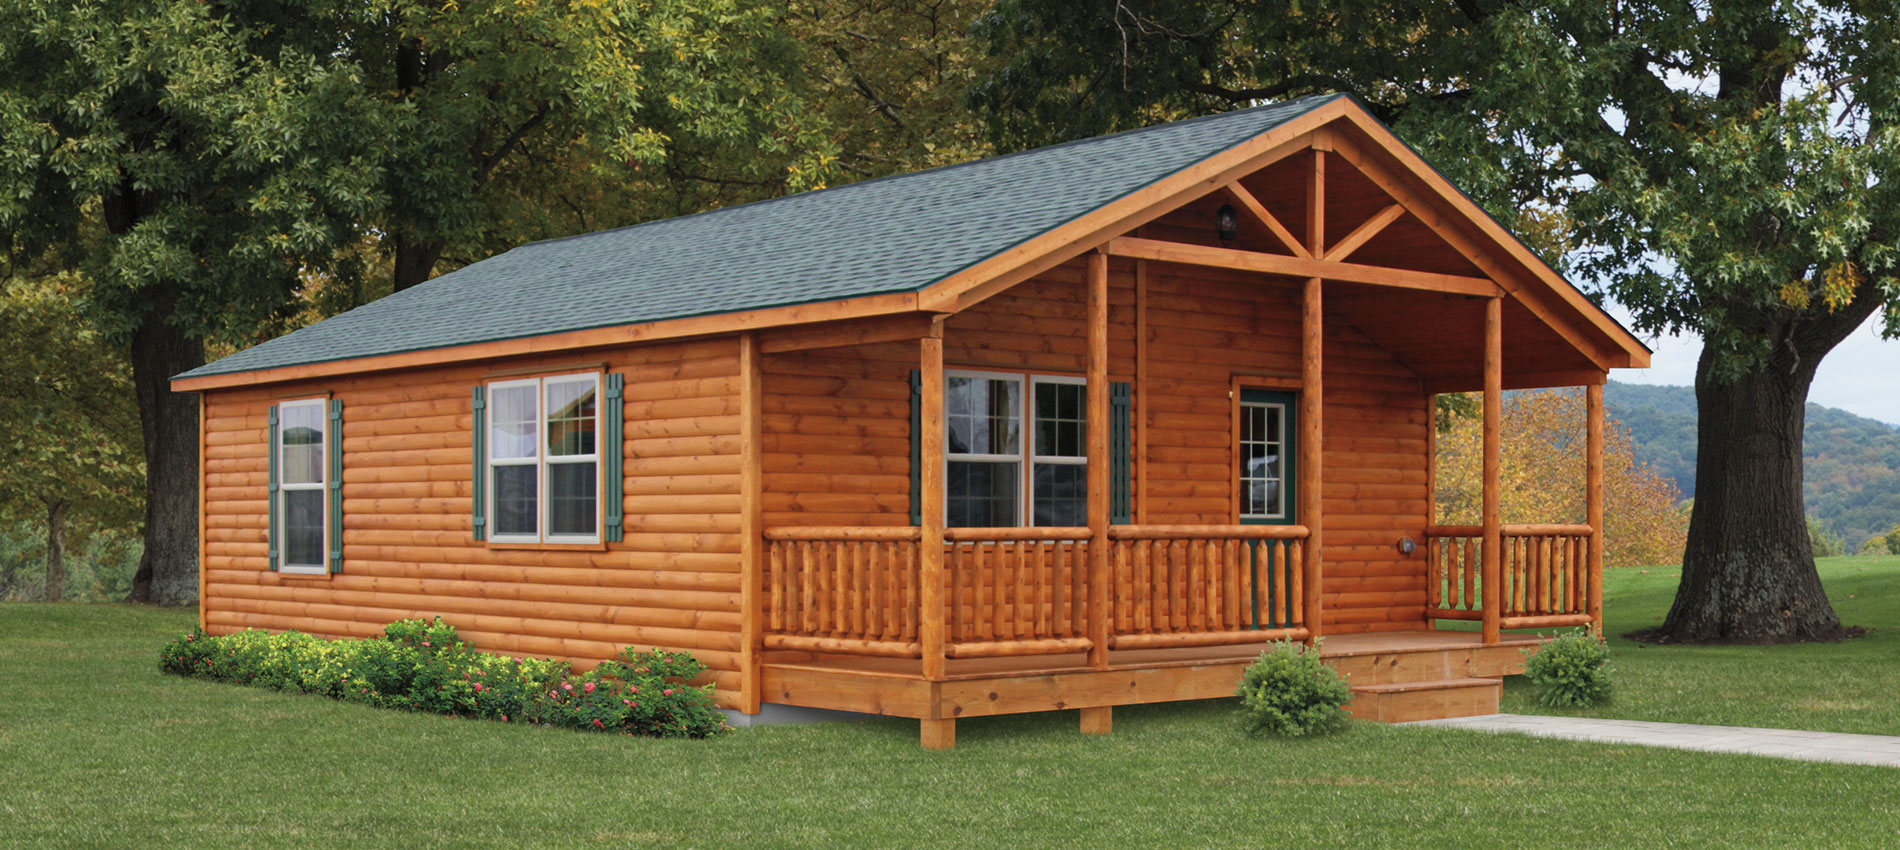 amish log cabin homes for sale by zook cabins